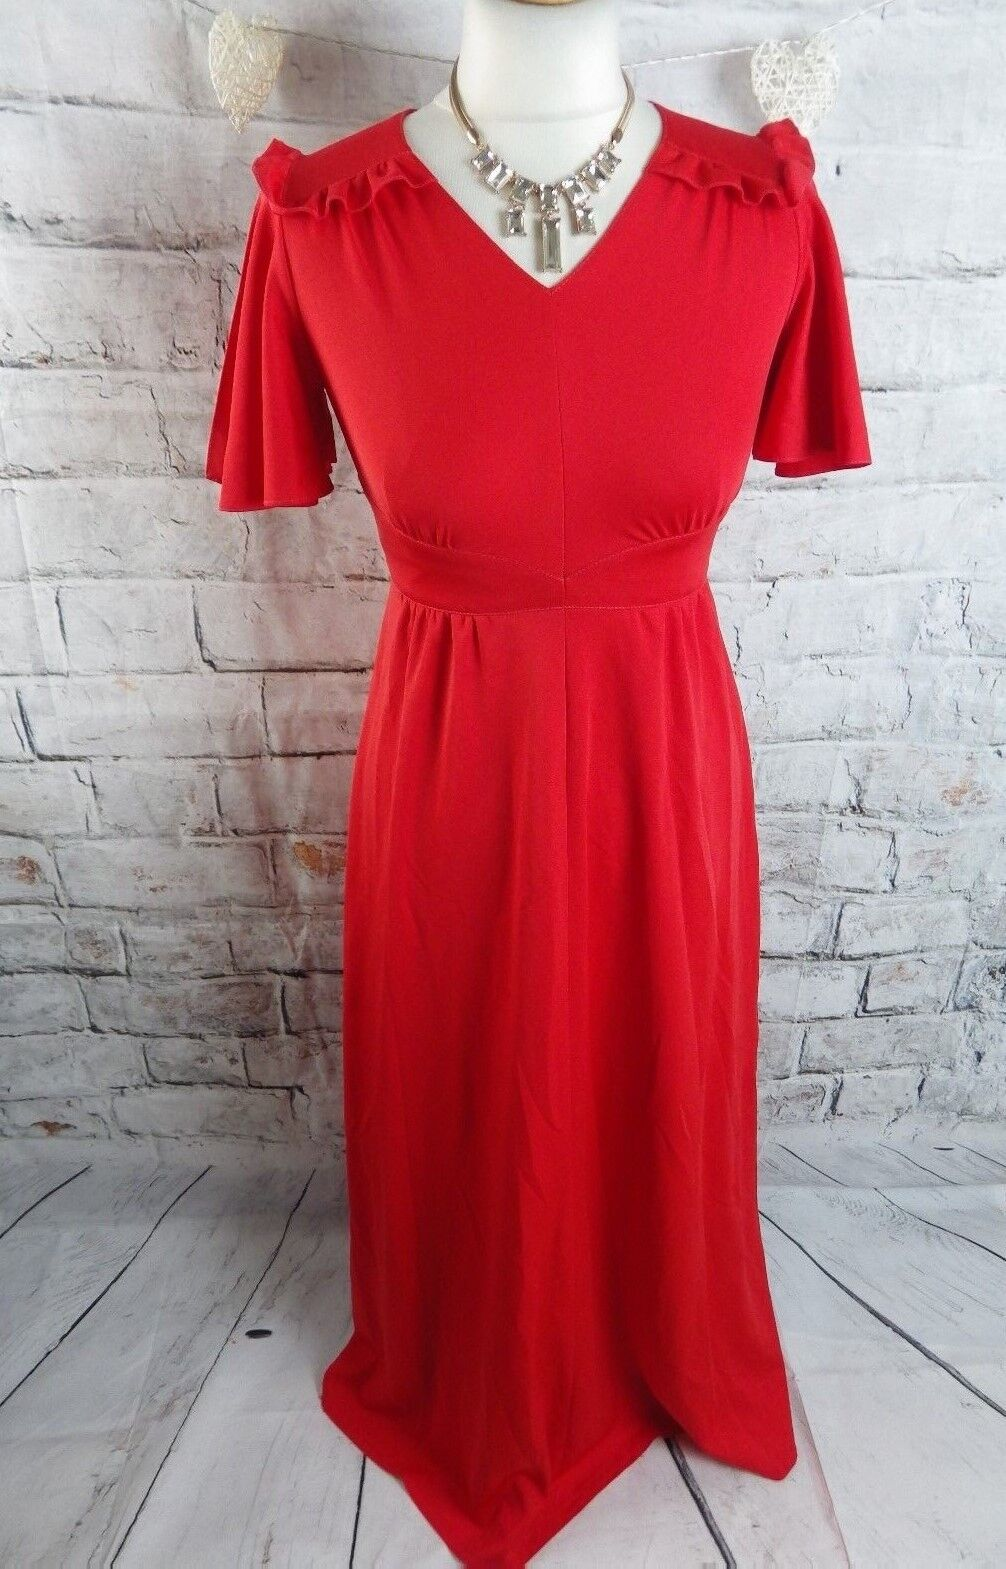 Vintage 70s maxi dress 8 10 petite P bust 34  red elegant party flattering long